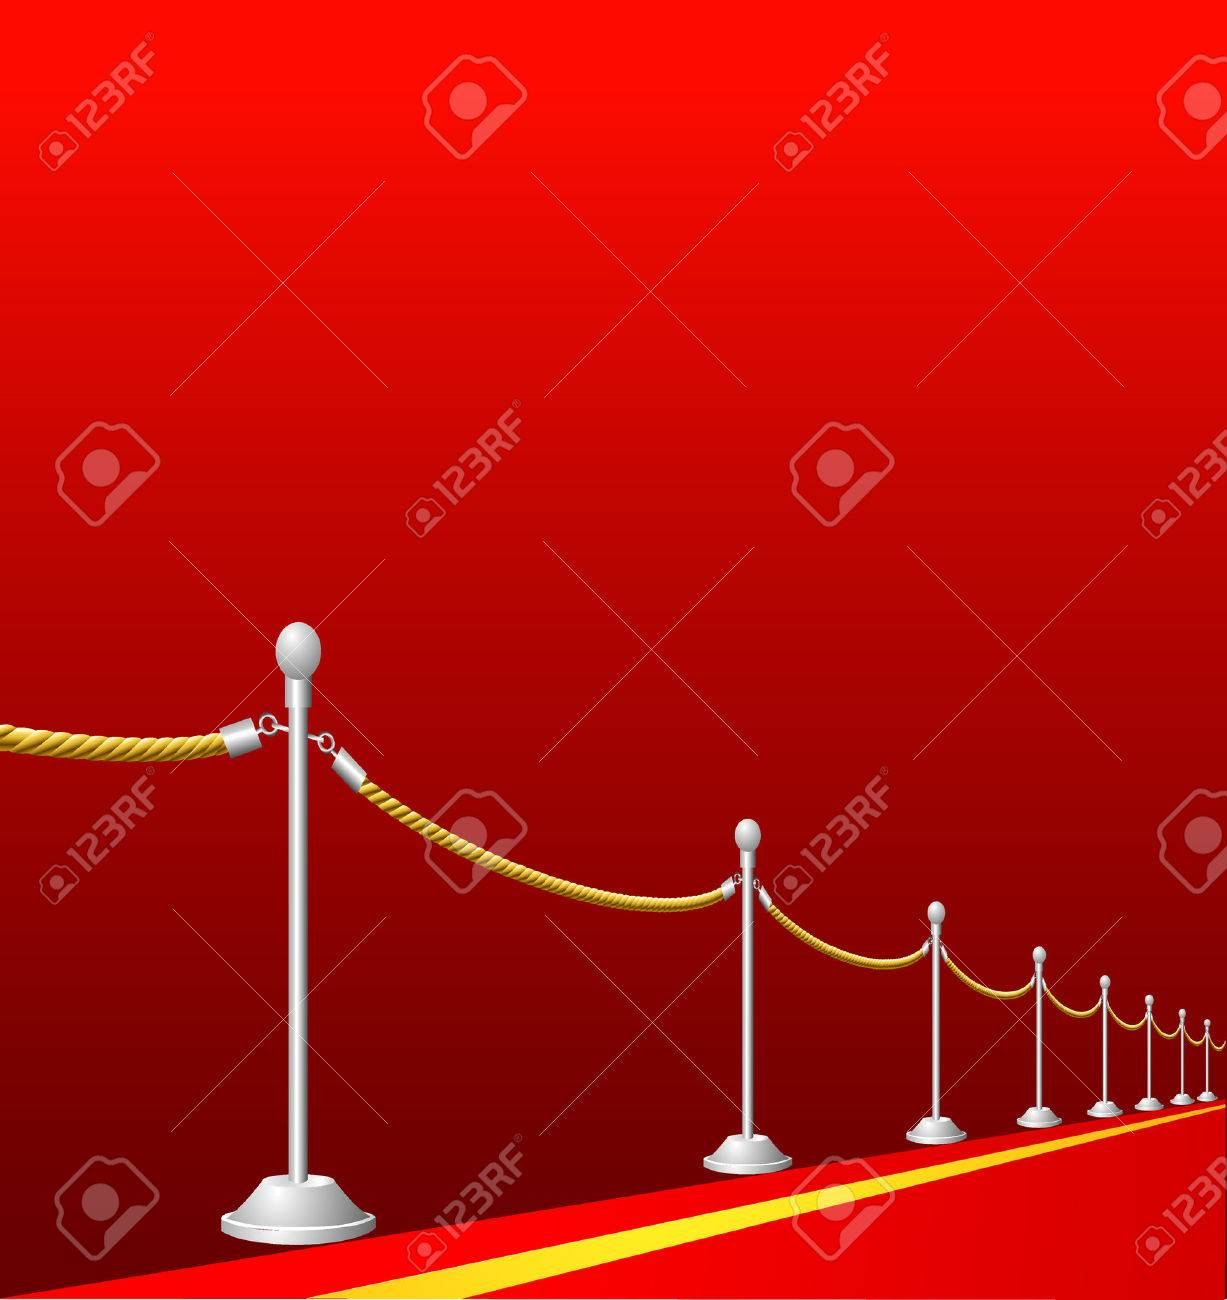 vector background with red carpet Stock Vector - 4183136